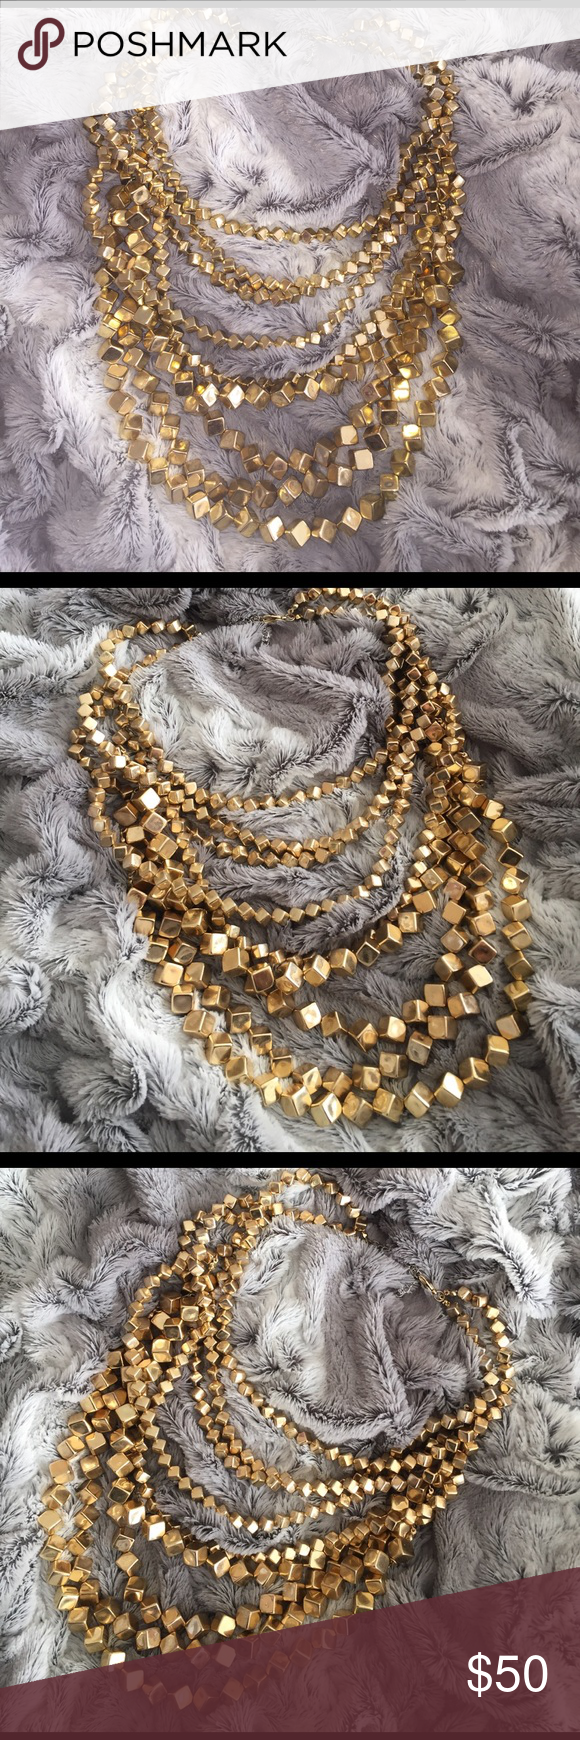 GORGEOUS Multi strand gold cube necklace Absolutely stunning. Conversation piece. Jewelry Necklaces